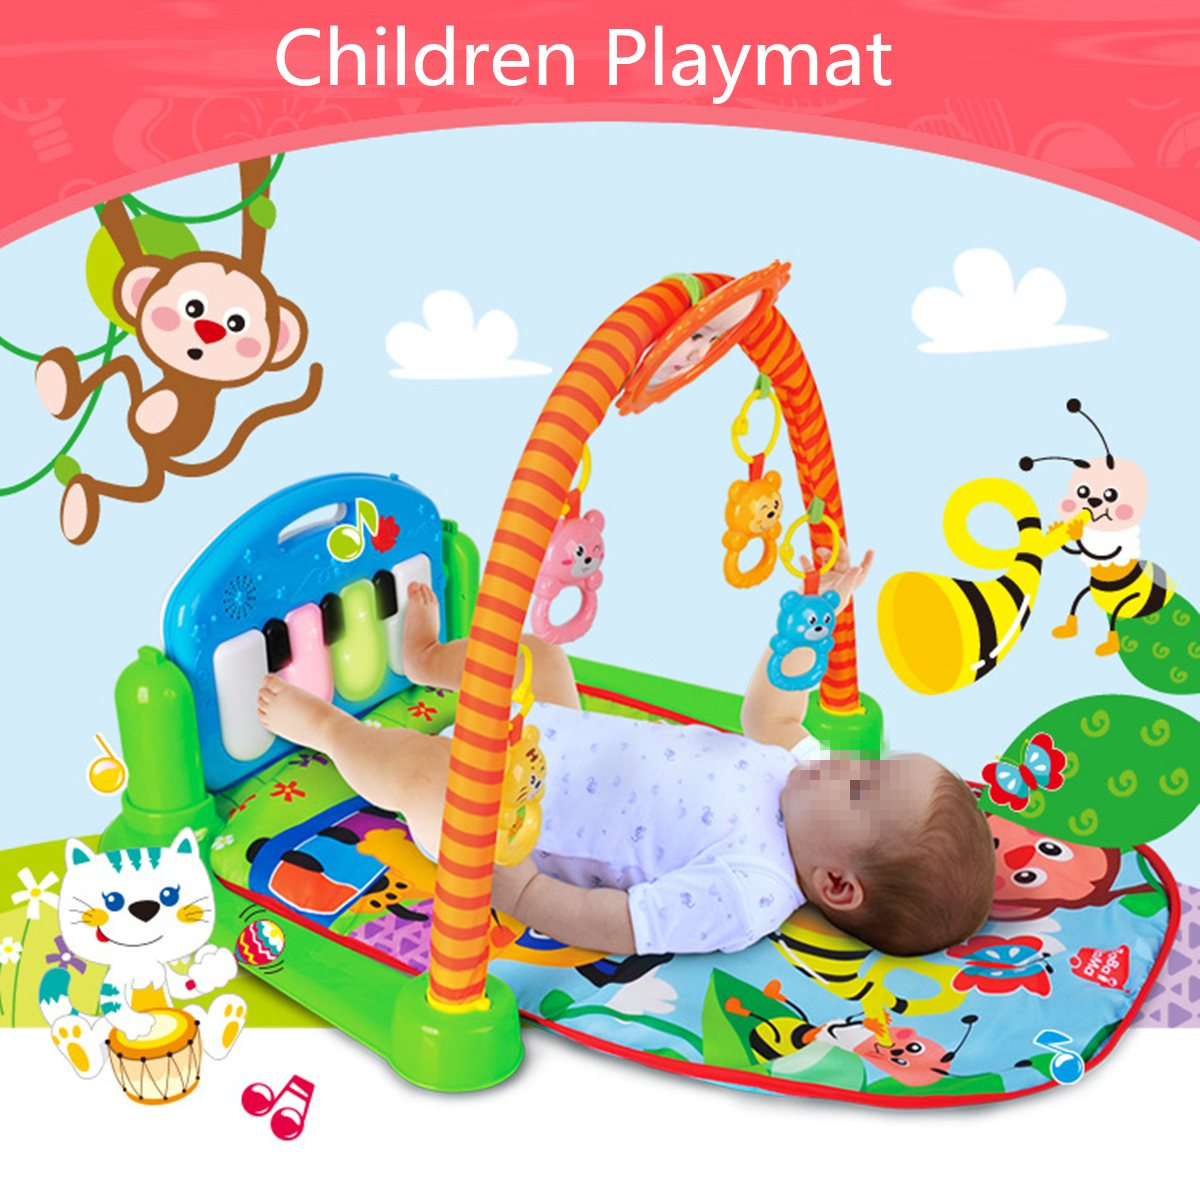 3 in 1 Rainforest Musical Lullaby Baby Activity Playmat Gym font b Toy b font Soft